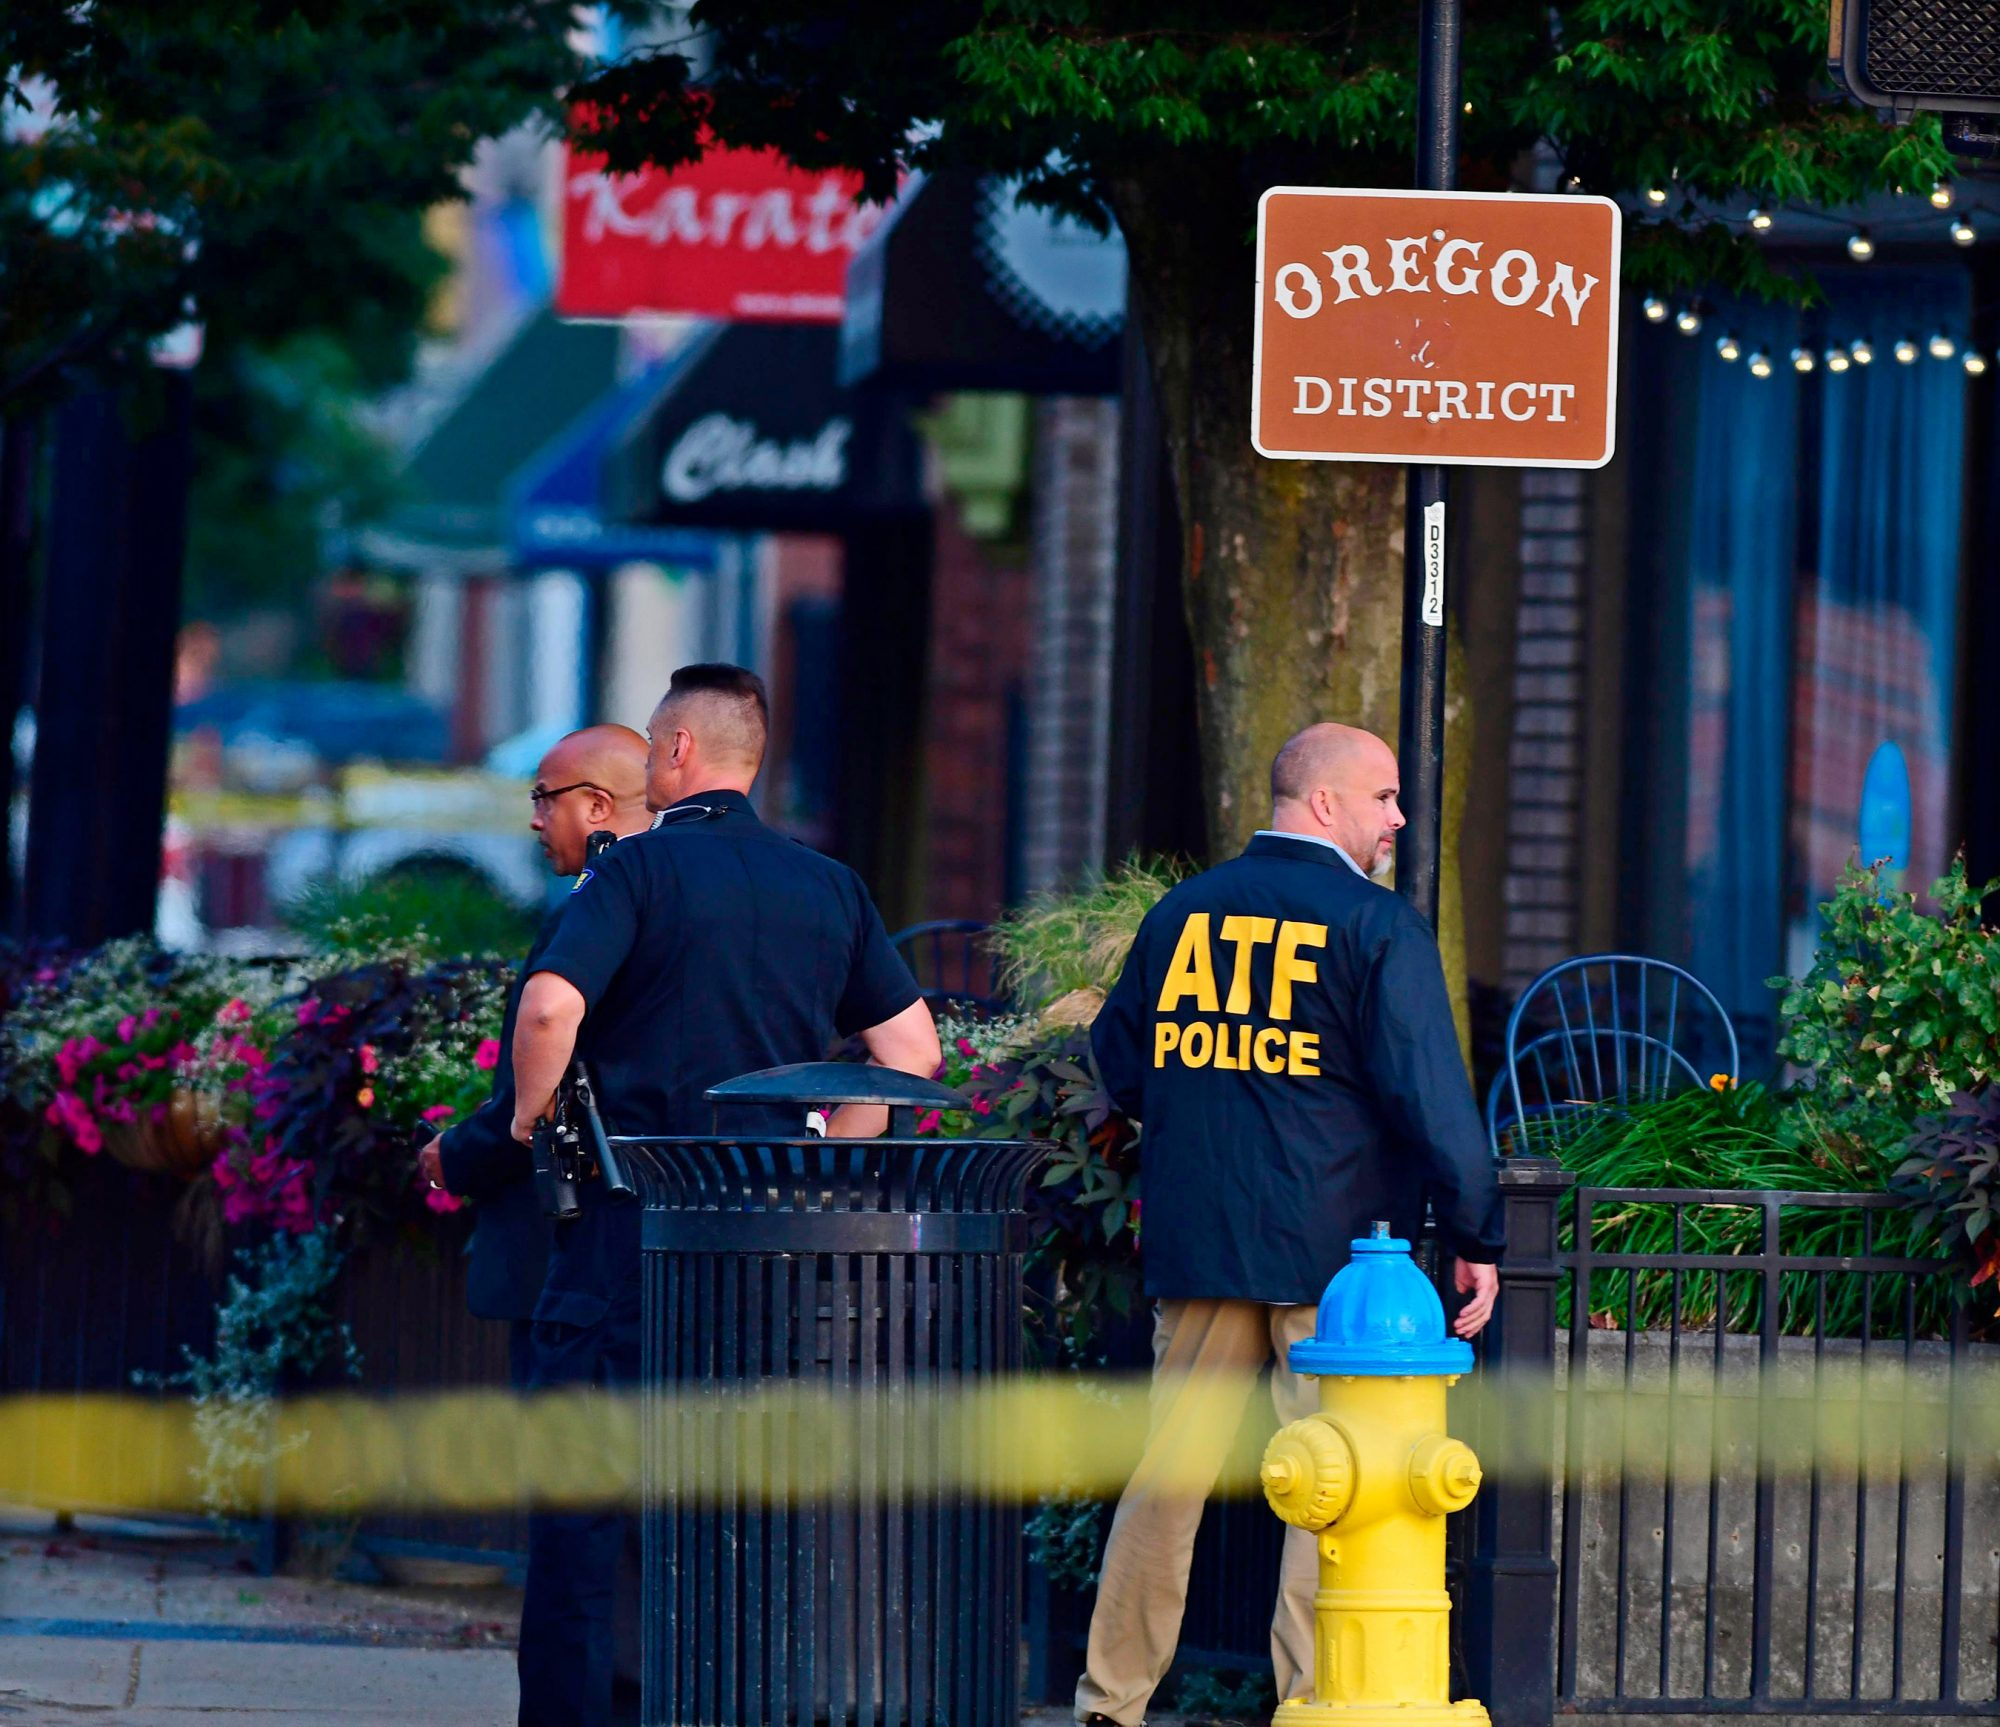 Police officers at the crime scene in Dayton, Ohio, USA, 04 August 2019